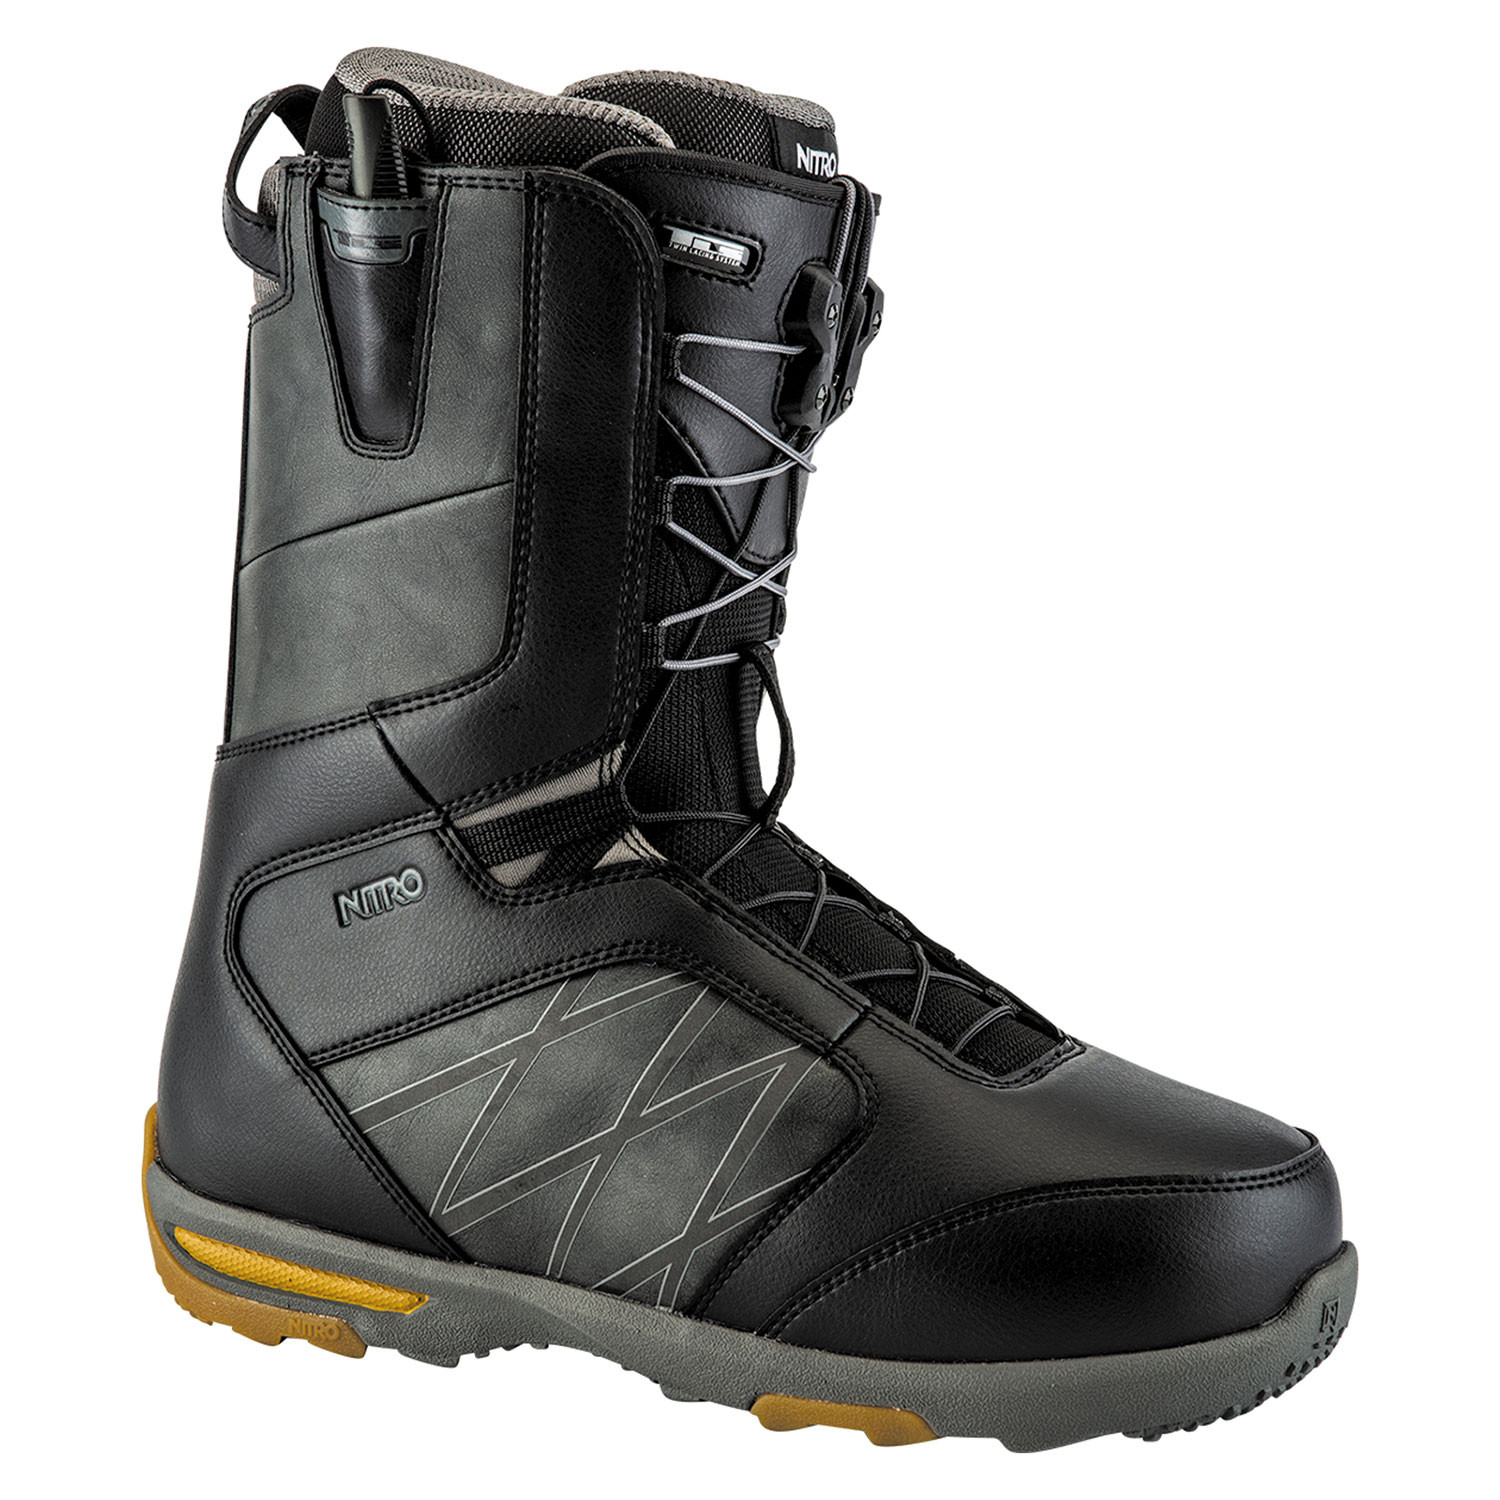 Boty Nitro Anthem Tls black/charcoal